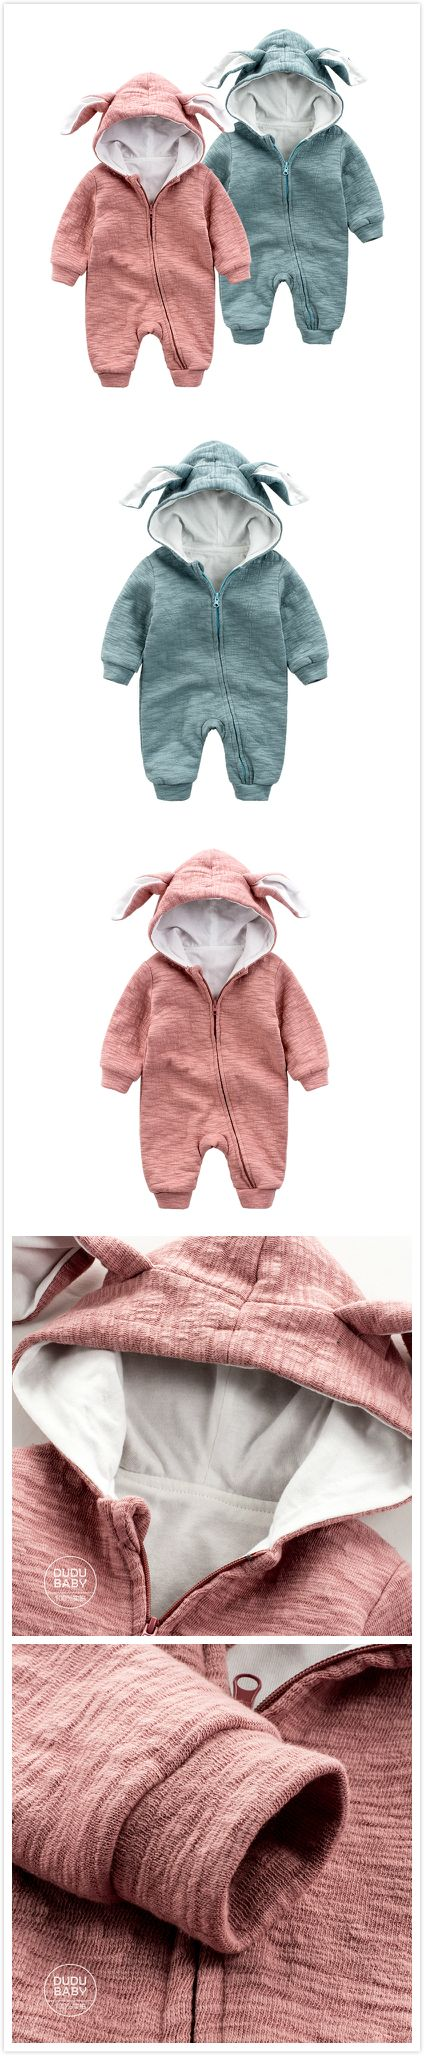 Infant toddler Baby Unisex Hooded  Clothes Jumpsuit Long Sleeve 4 Color 3-24Month For Autumn Winter